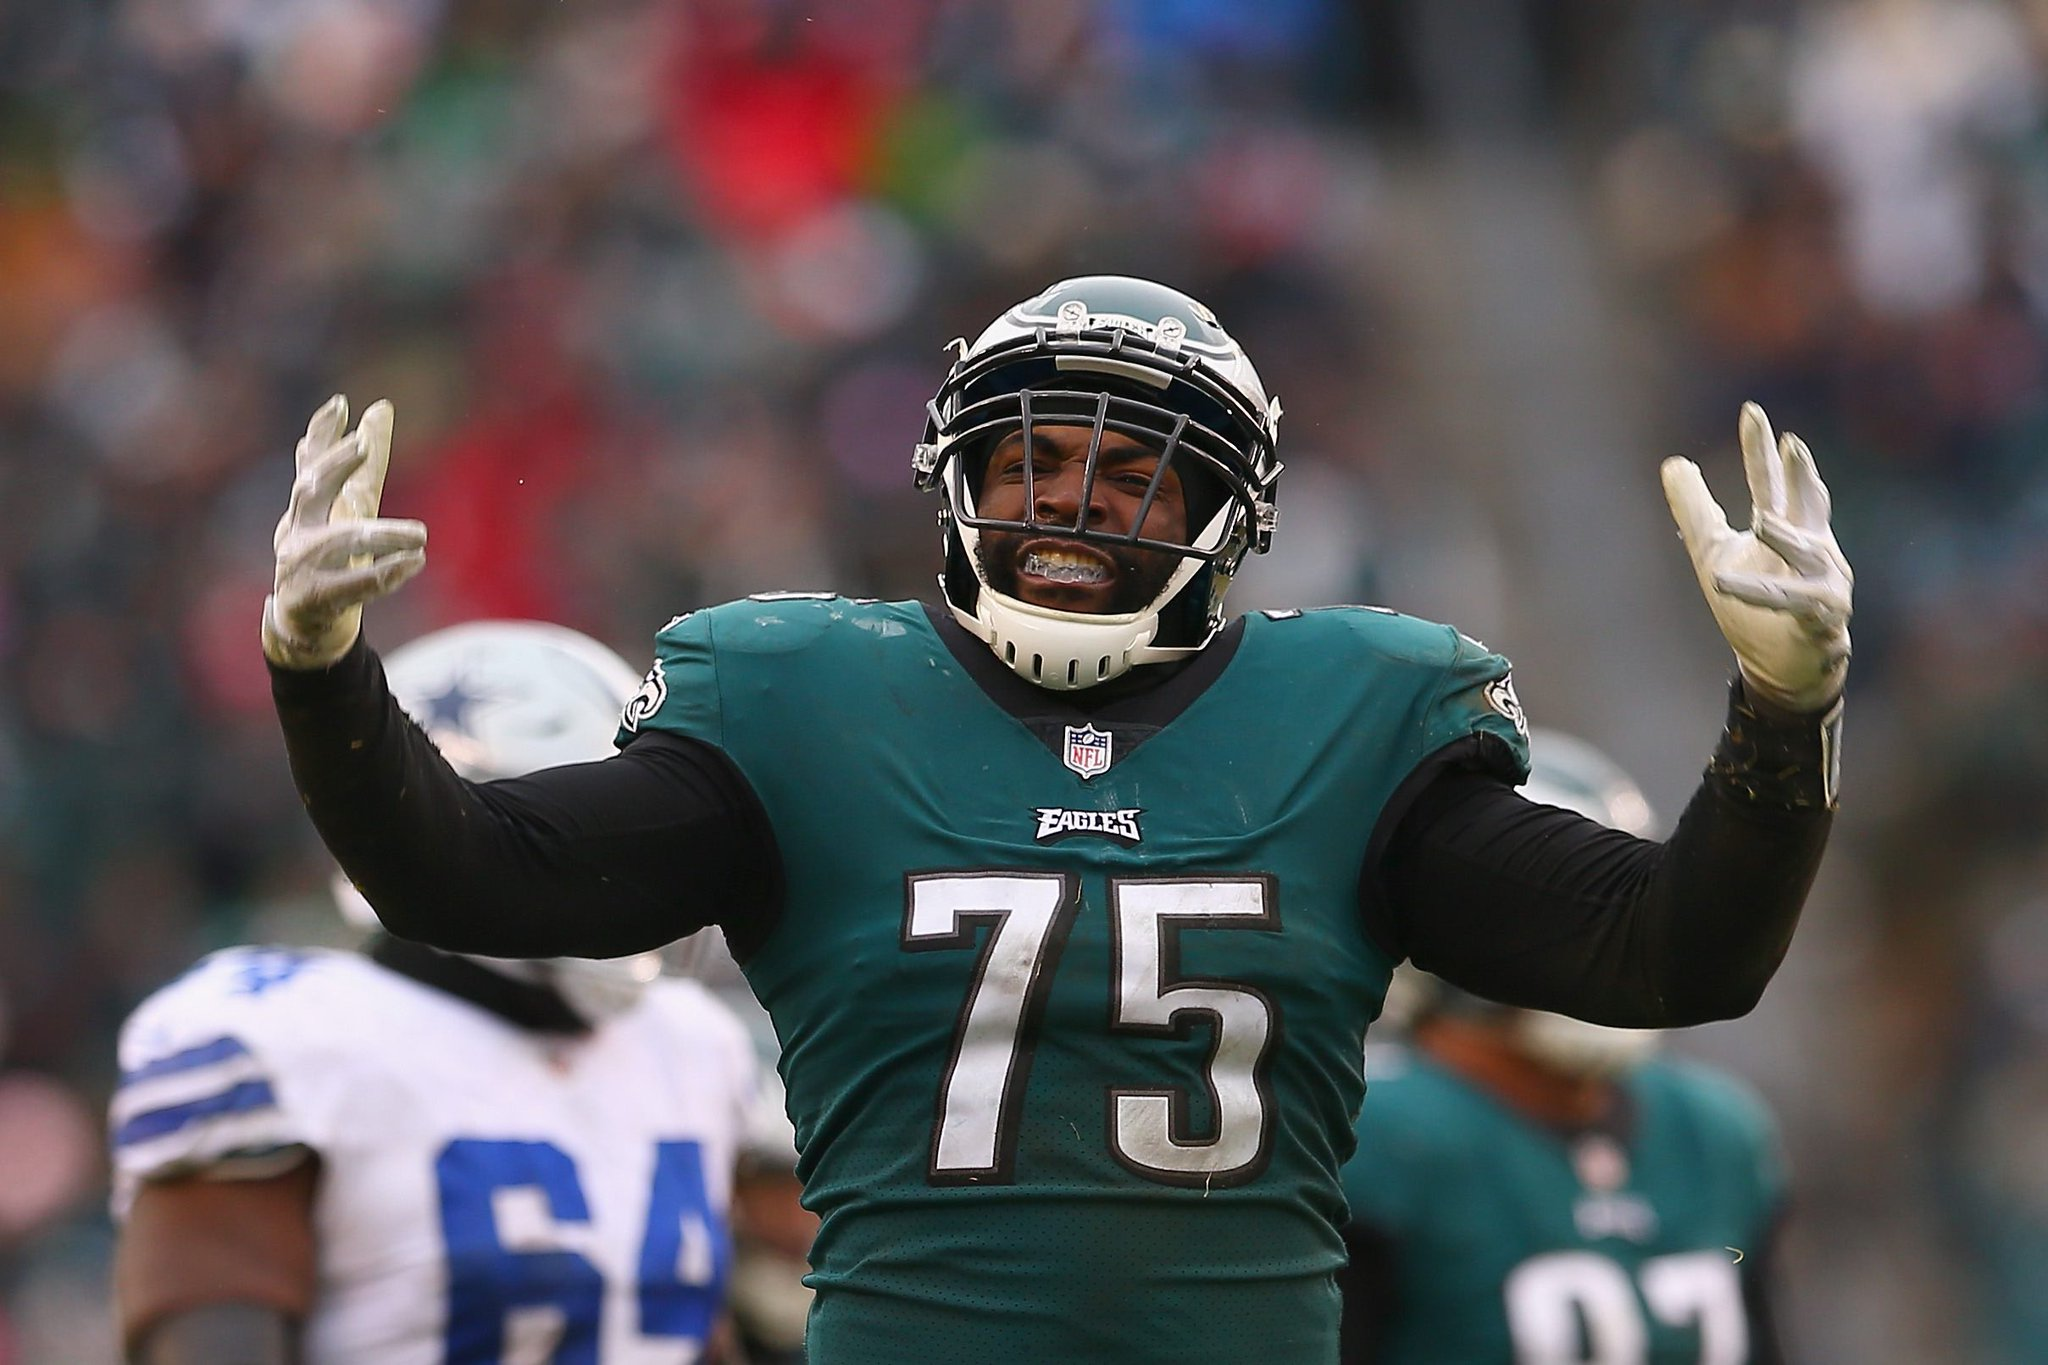 Eagles are expected to release DE Vinny Curry, per @RapSheet https://t.co/XJRzo0vQ20